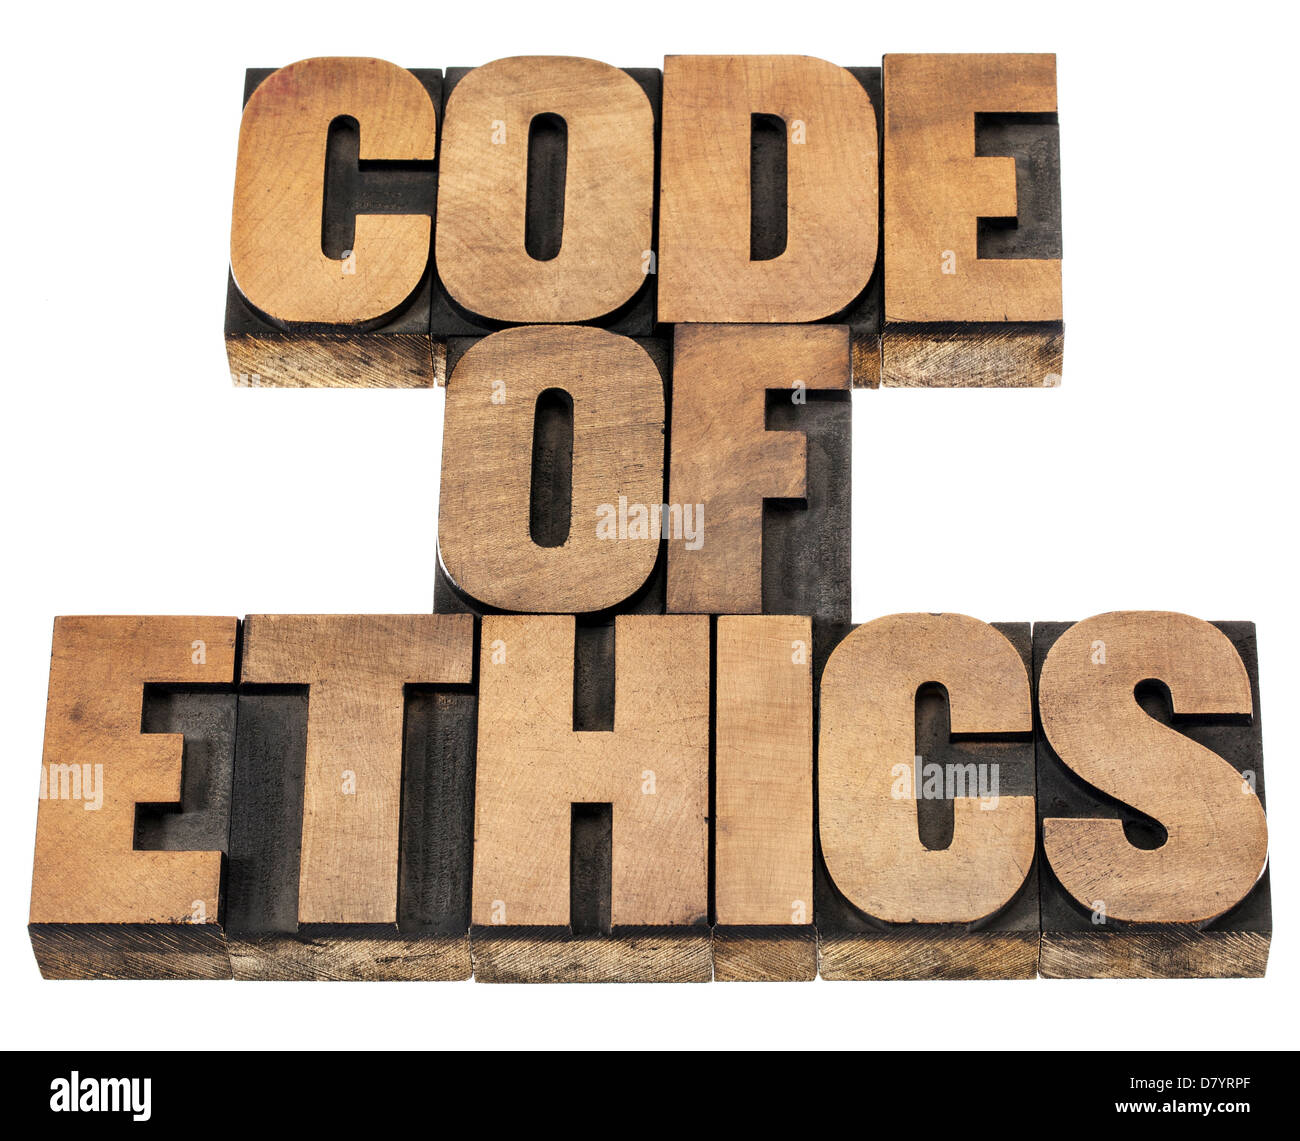 code of ethics - isolated text in letterpress wood type printing blocks - Stock Image